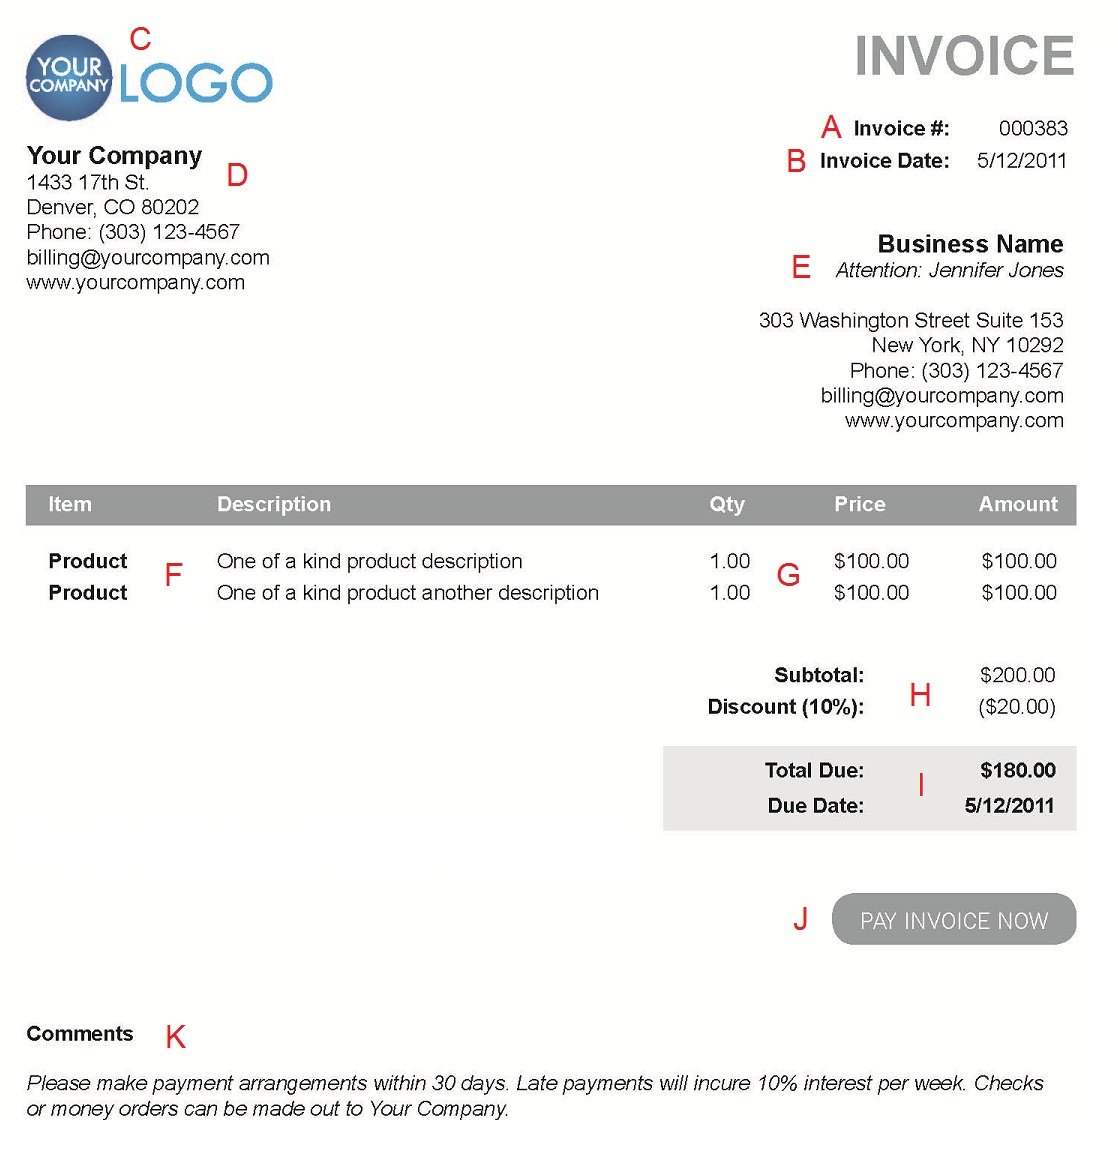 Coachoutletonlineplusus  Remarkable The  Different Sections Of An Electronic Payment Invoice With Interesting A  With Beautiful Invoice Accounting Definition Also Detailed Invoice Template In Addition Employee Invoice Template And What Is The Difference Between Invoice And Msrp As Well As Invoice Payment Terms Example Additionally Quick Invoices From Paysimplecom With Coachoutletonlineplusus  Interesting The  Different Sections Of An Electronic Payment Invoice With Beautiful A  And Remarkable Invoice Accounting Definition Also Detailed Invoice Template In Addition Employee Invoice Template From Paysimplecom